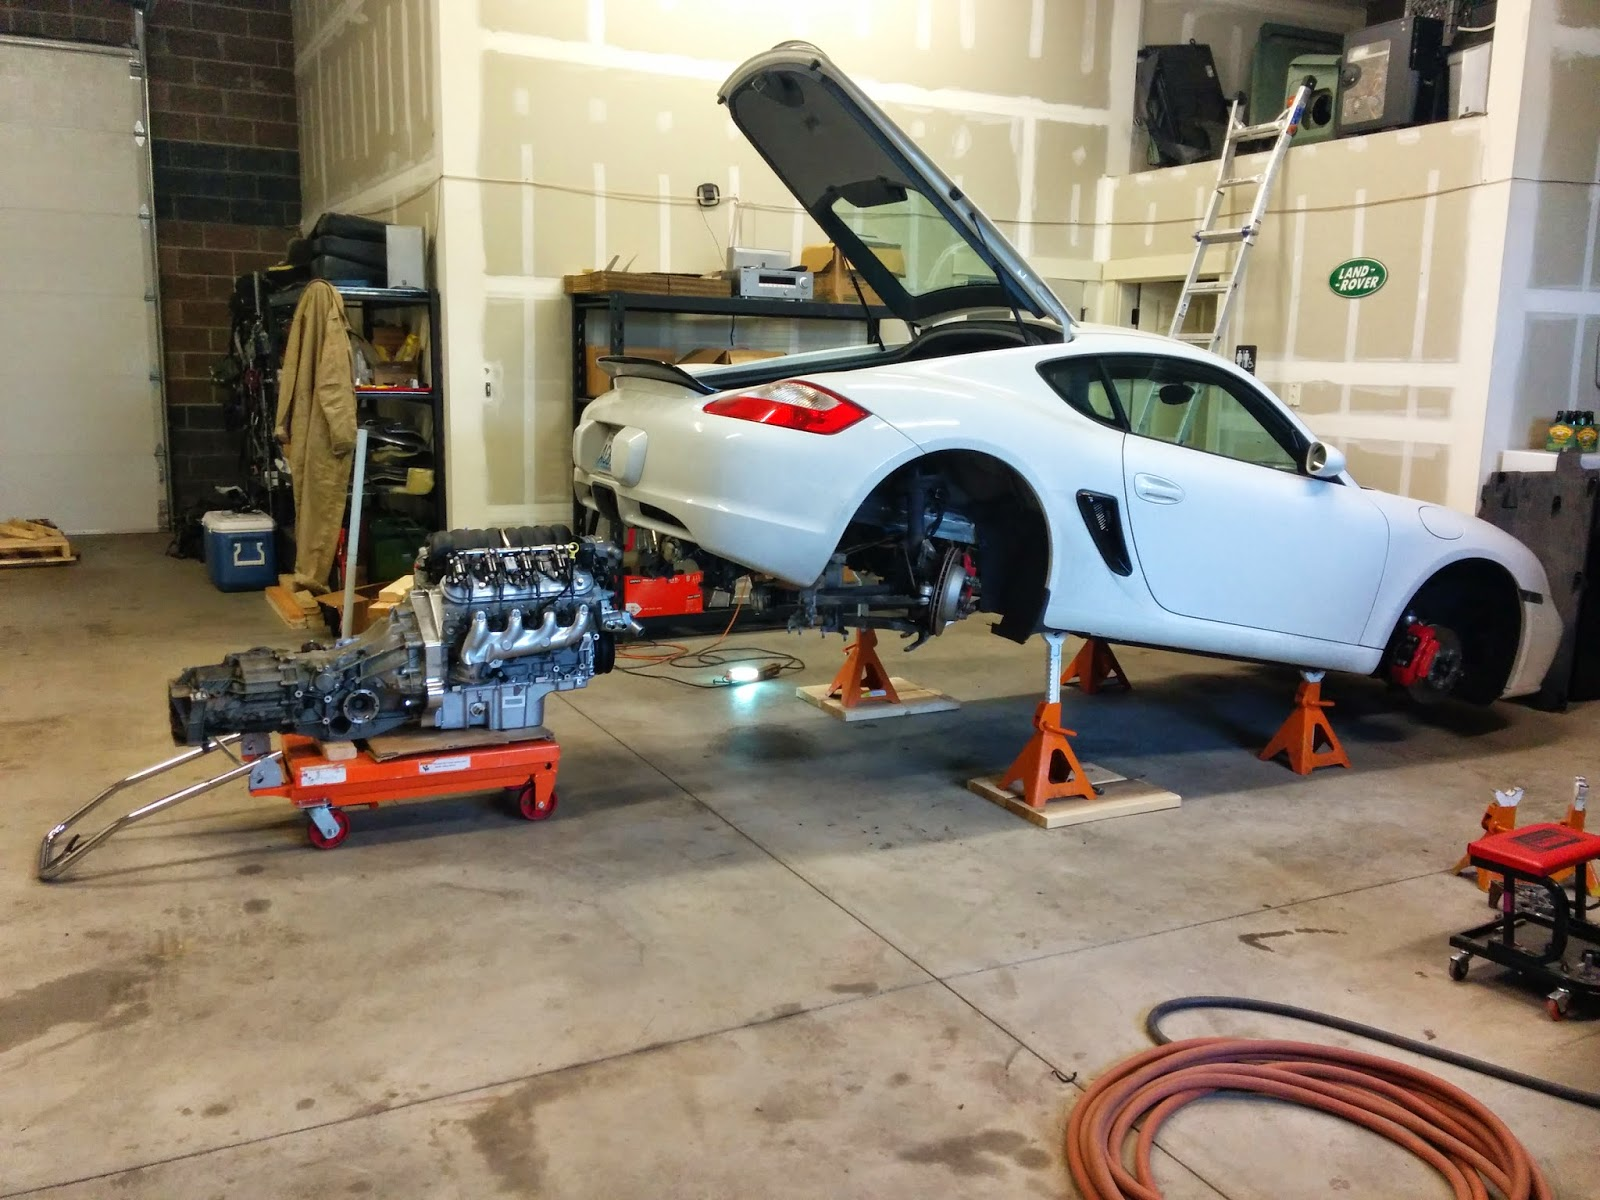 2007 cayman s with a blown motor meet ls3 kennedy adapter factory transmission